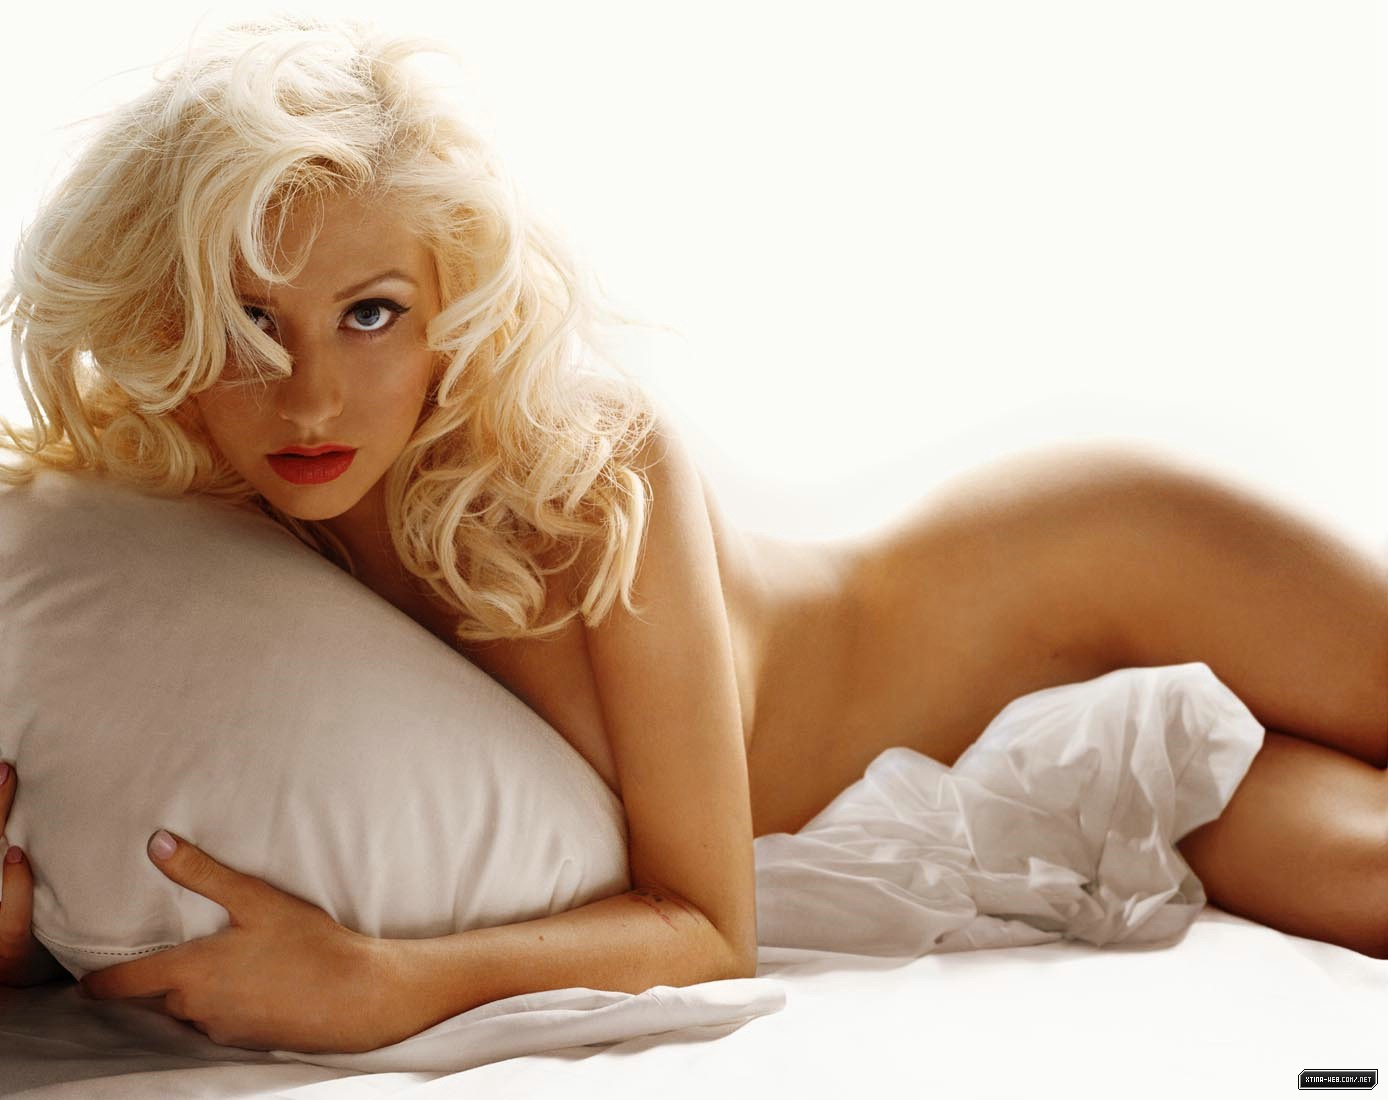 Aguilera christina nude photo shoot